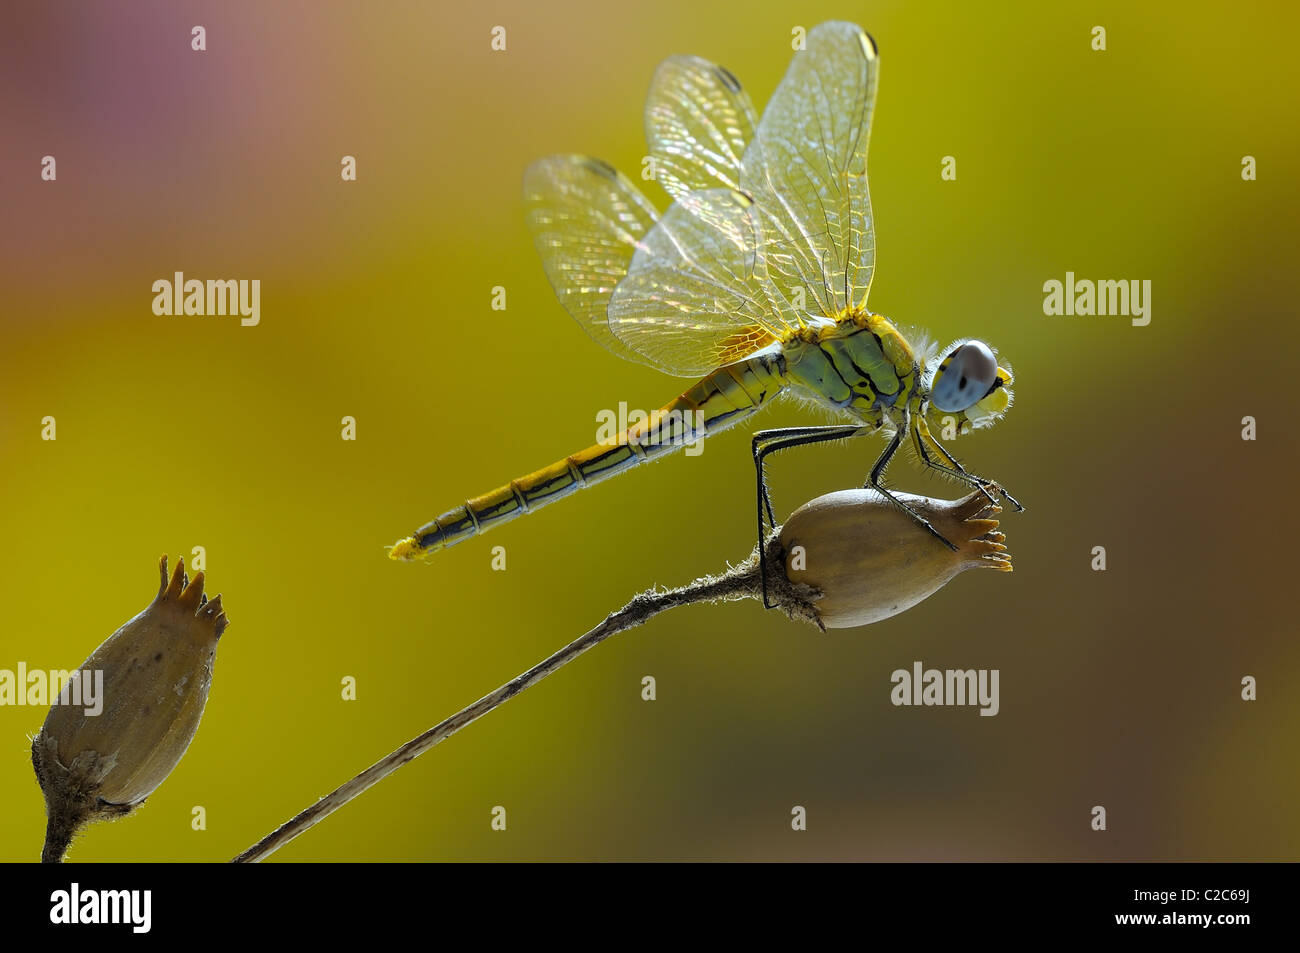 Dragonfly (sympetrum fonscolombii) placed on stem dry selene - Stock Image